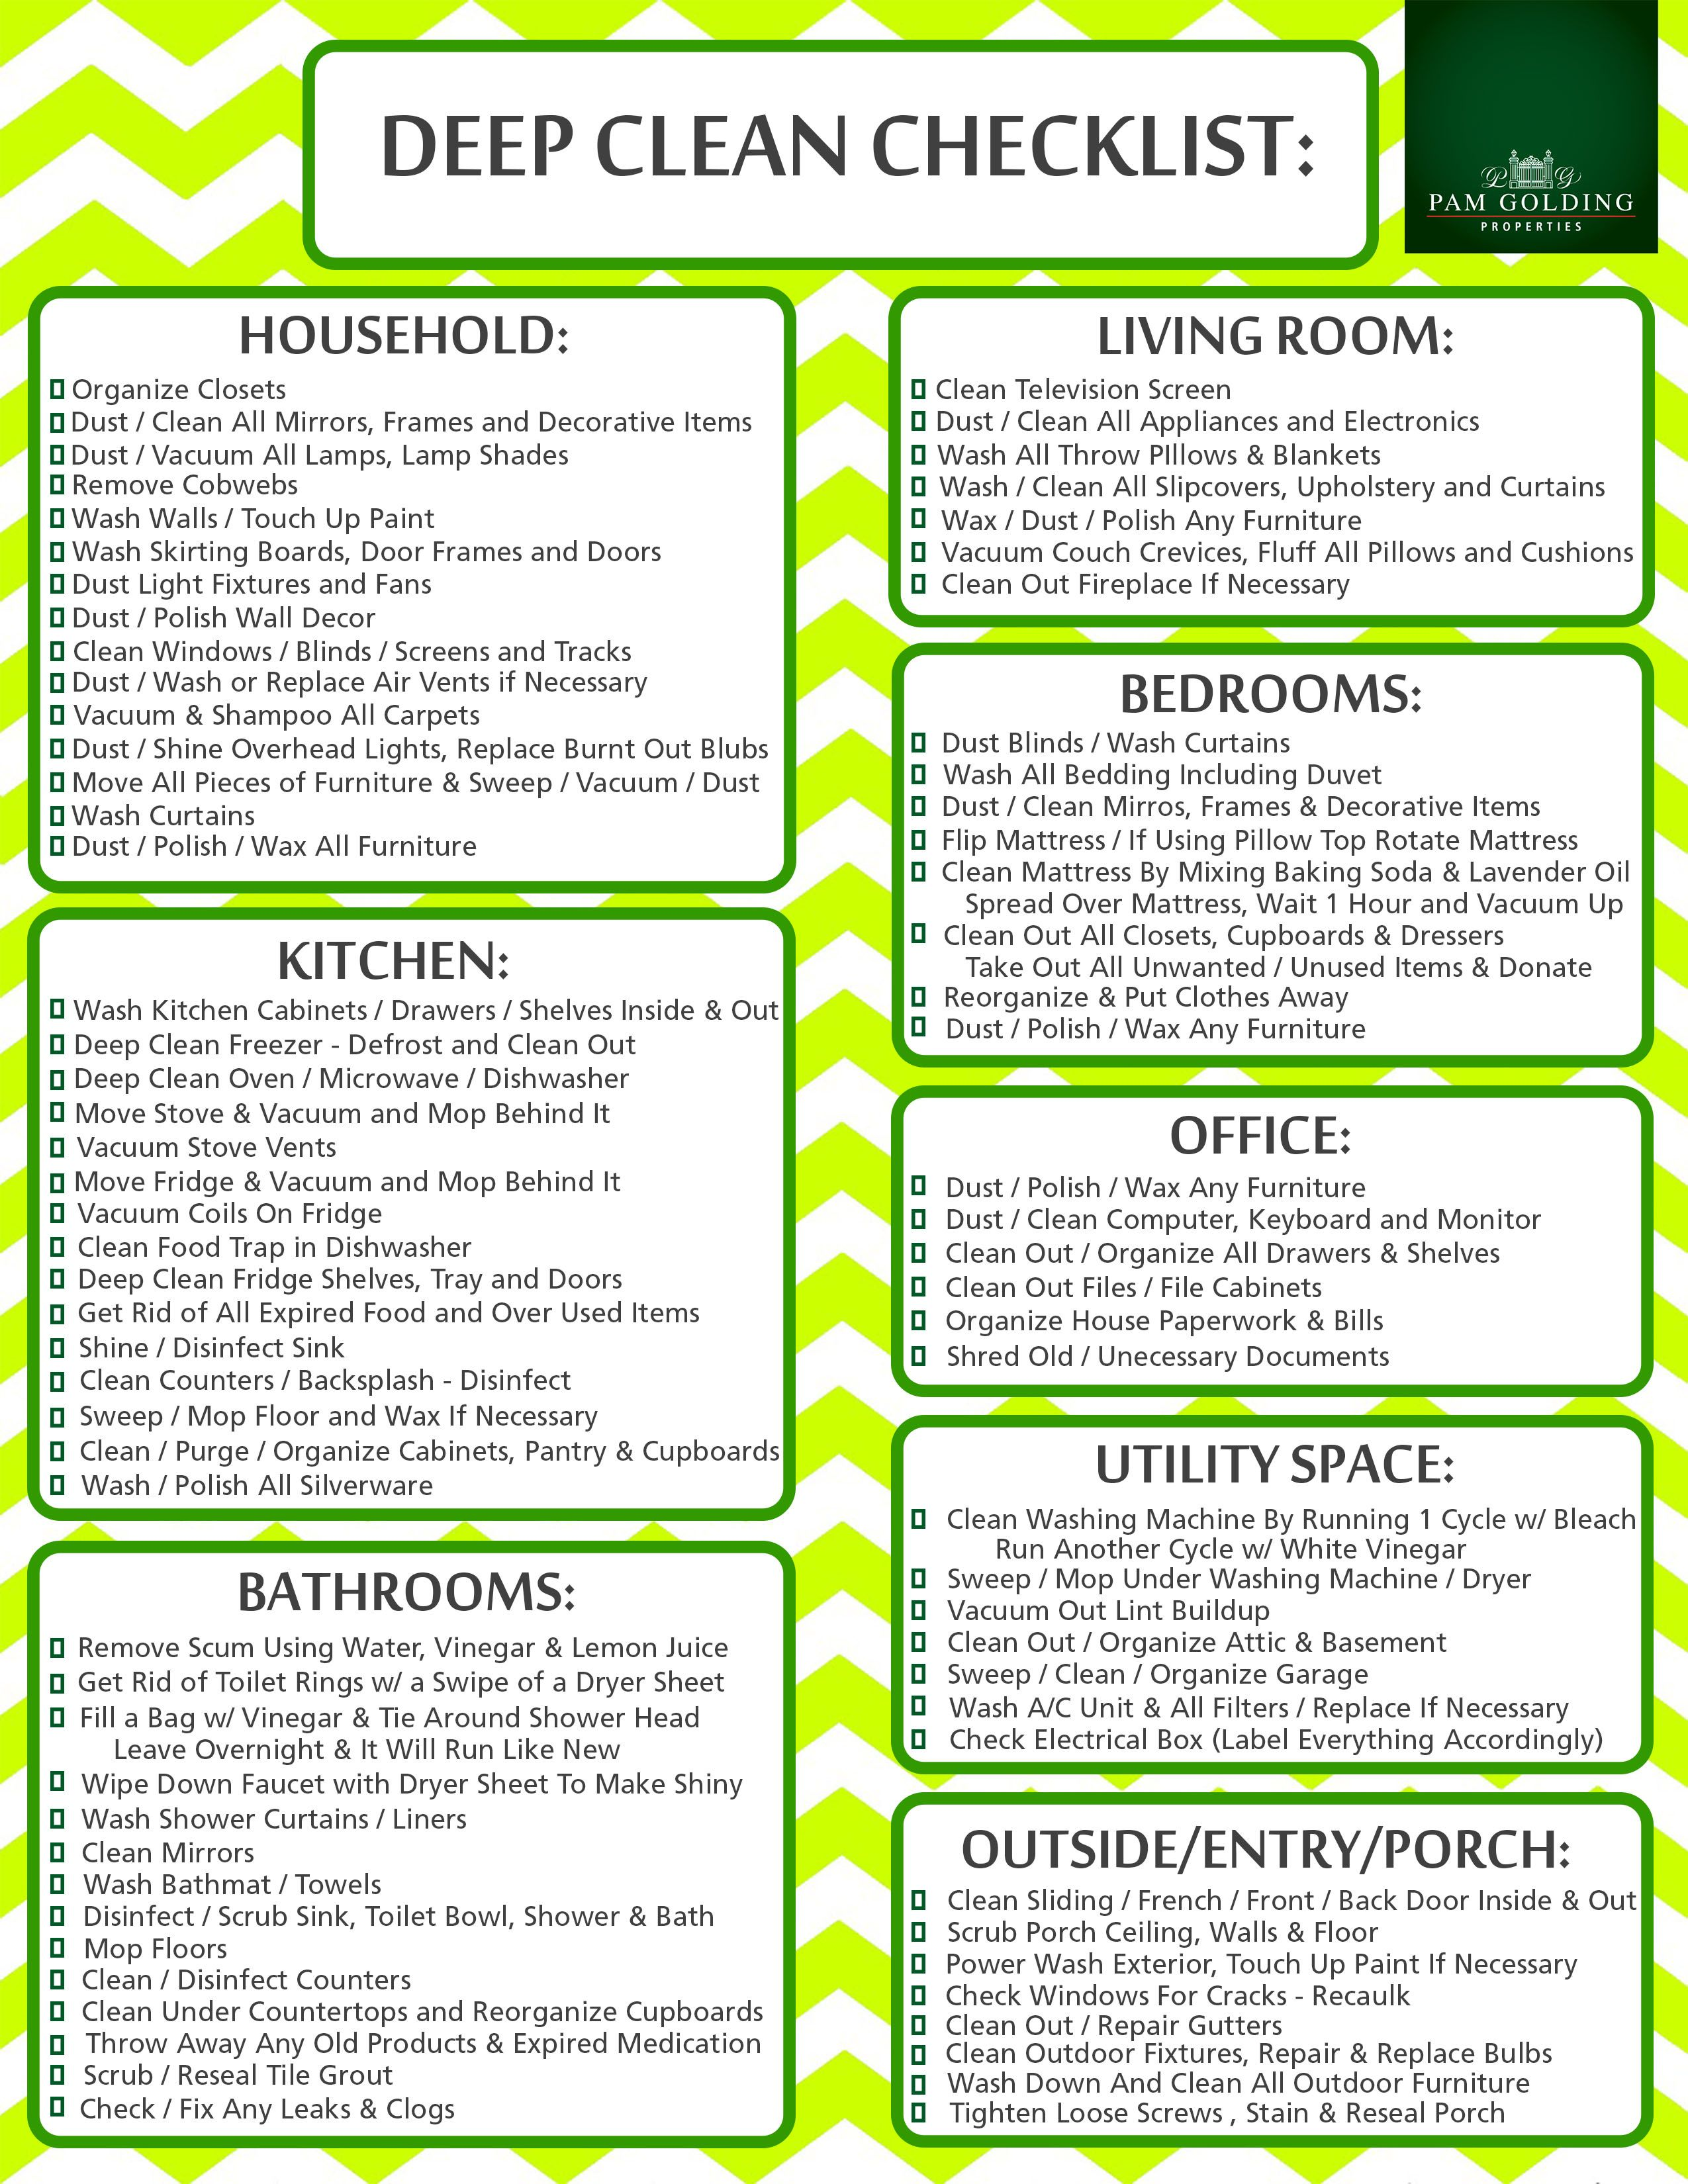 click the image to print your deep clean checklist